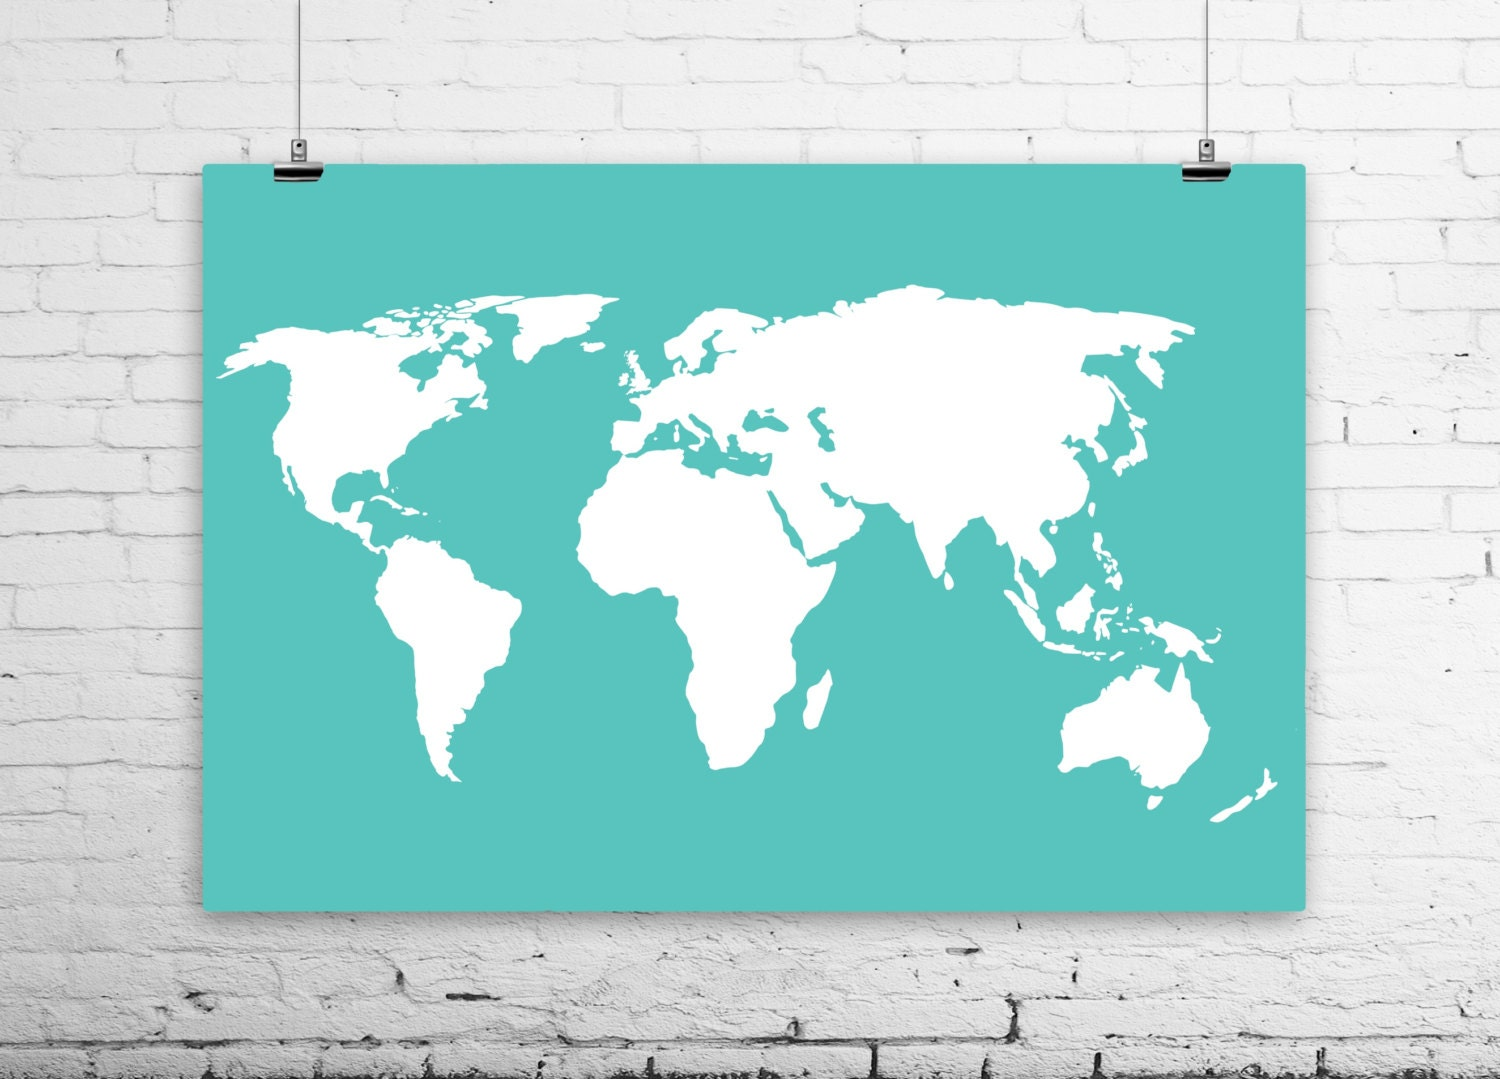 world map poster sizes from 4x6 to 36x48 large by bysamantha. Black Bedroom Furniture Sets. Home Design Ideas